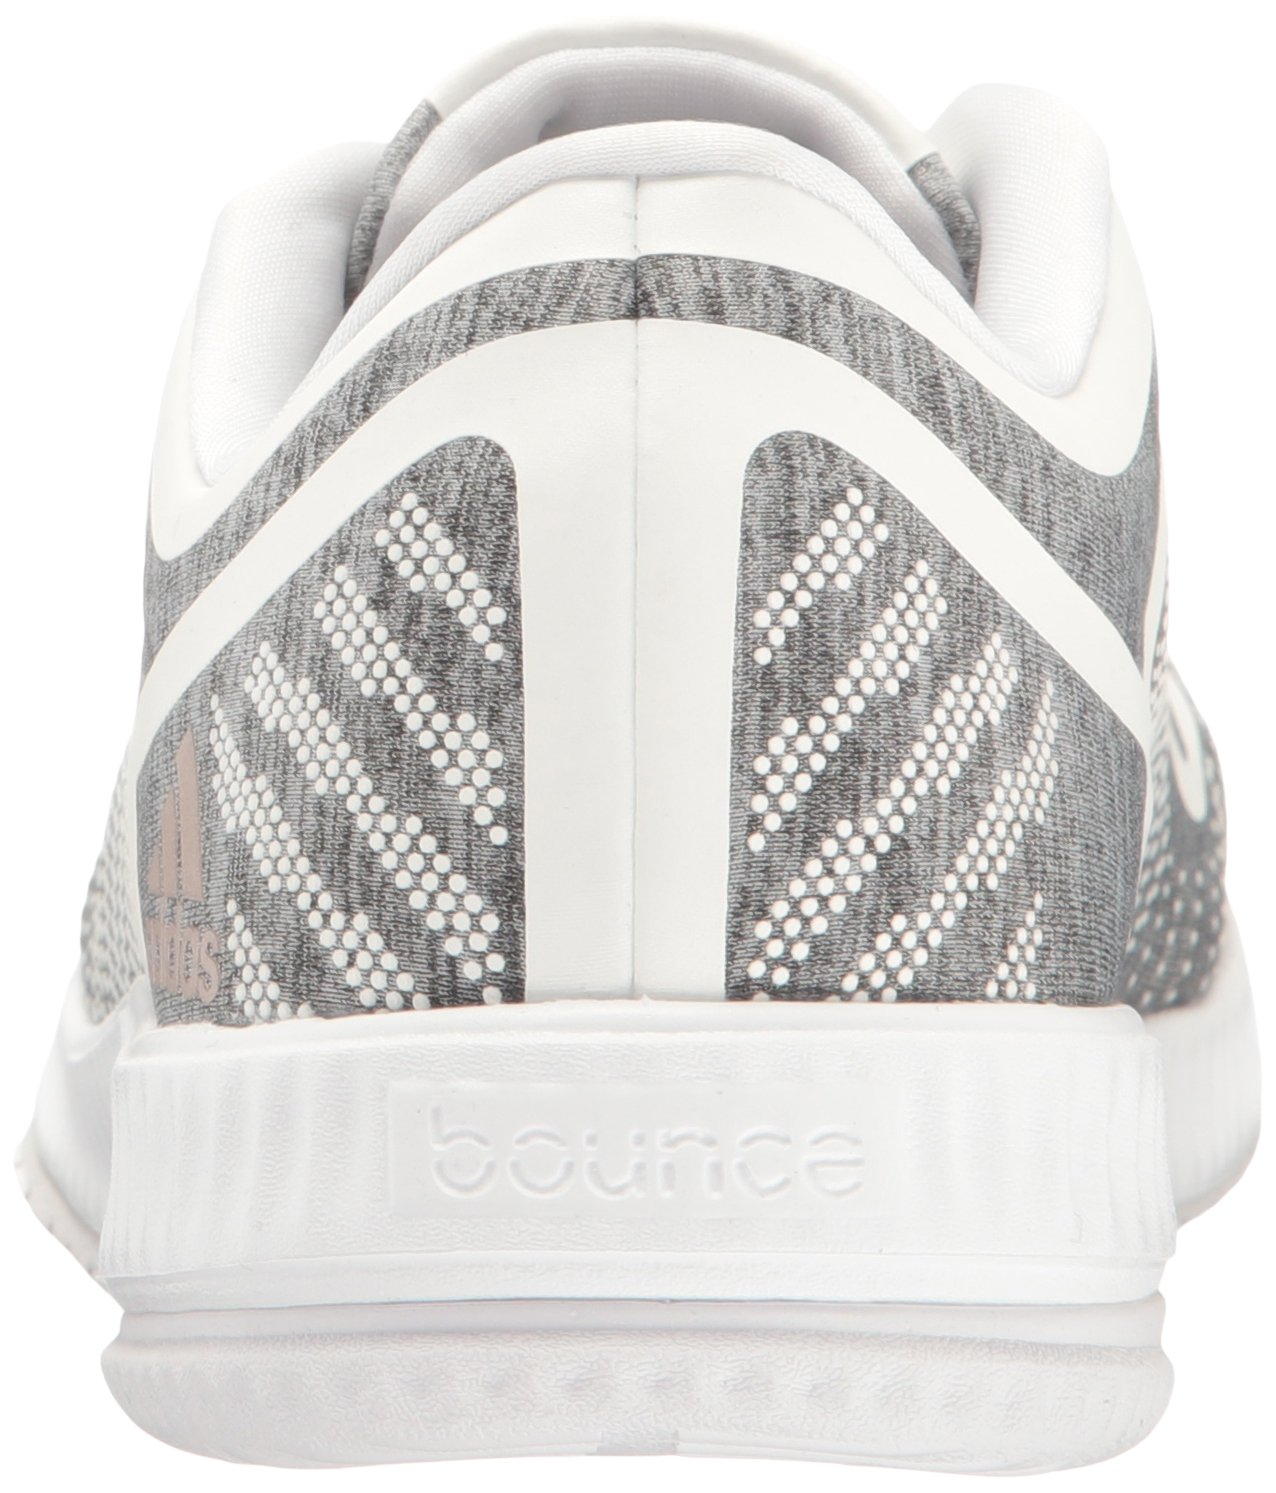 new concept bf553 459a3 Zapatillas Adidas Performance para mujer Athletics Bounce W Cross-Trainer  Gris claro Heather  Vapor Gris  Blanco